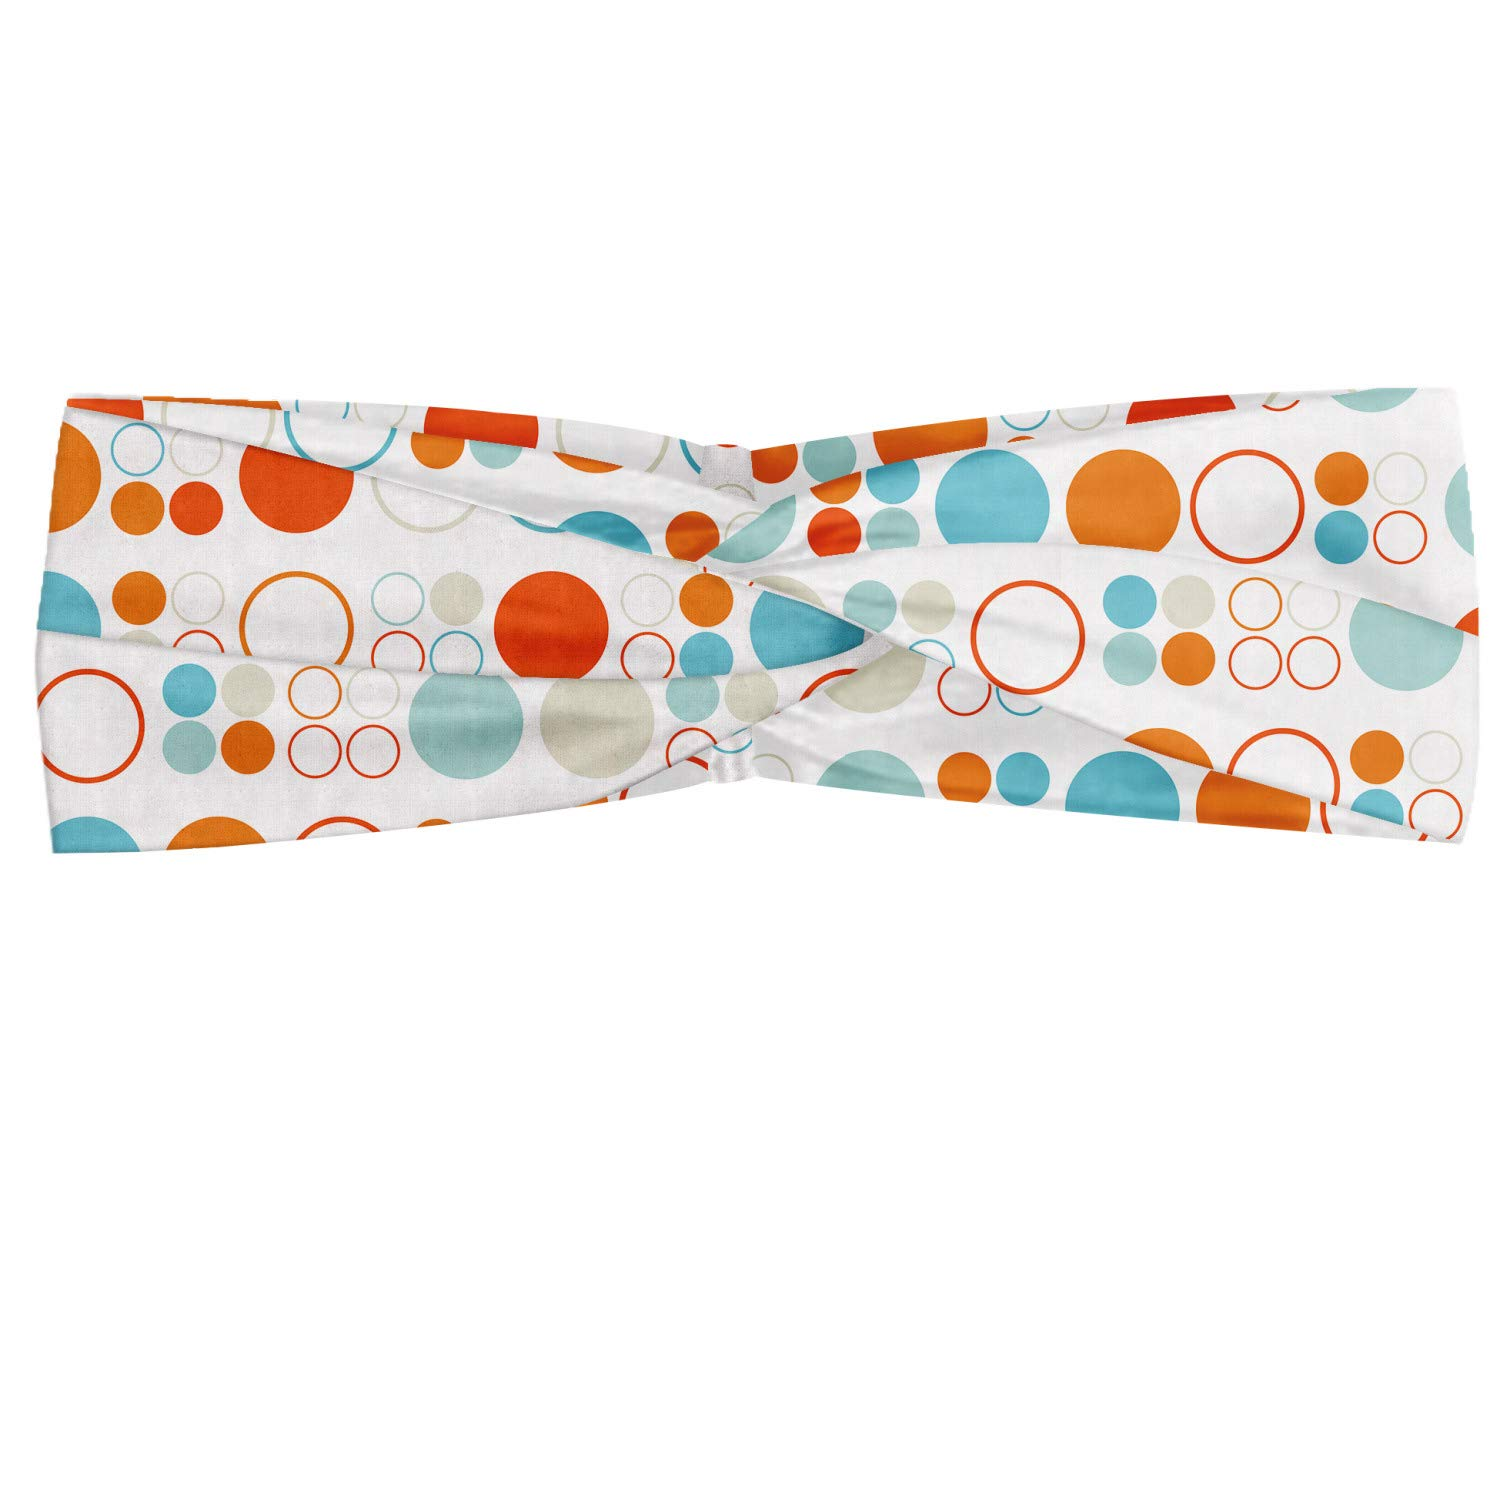 Ambesonne Geometric Headband, Simplistic Colorful Circles Rings Ovals Rounds Playroom Design, Elastic and Soft Women's Bandana for Sports and Everyday Use, Multicolor